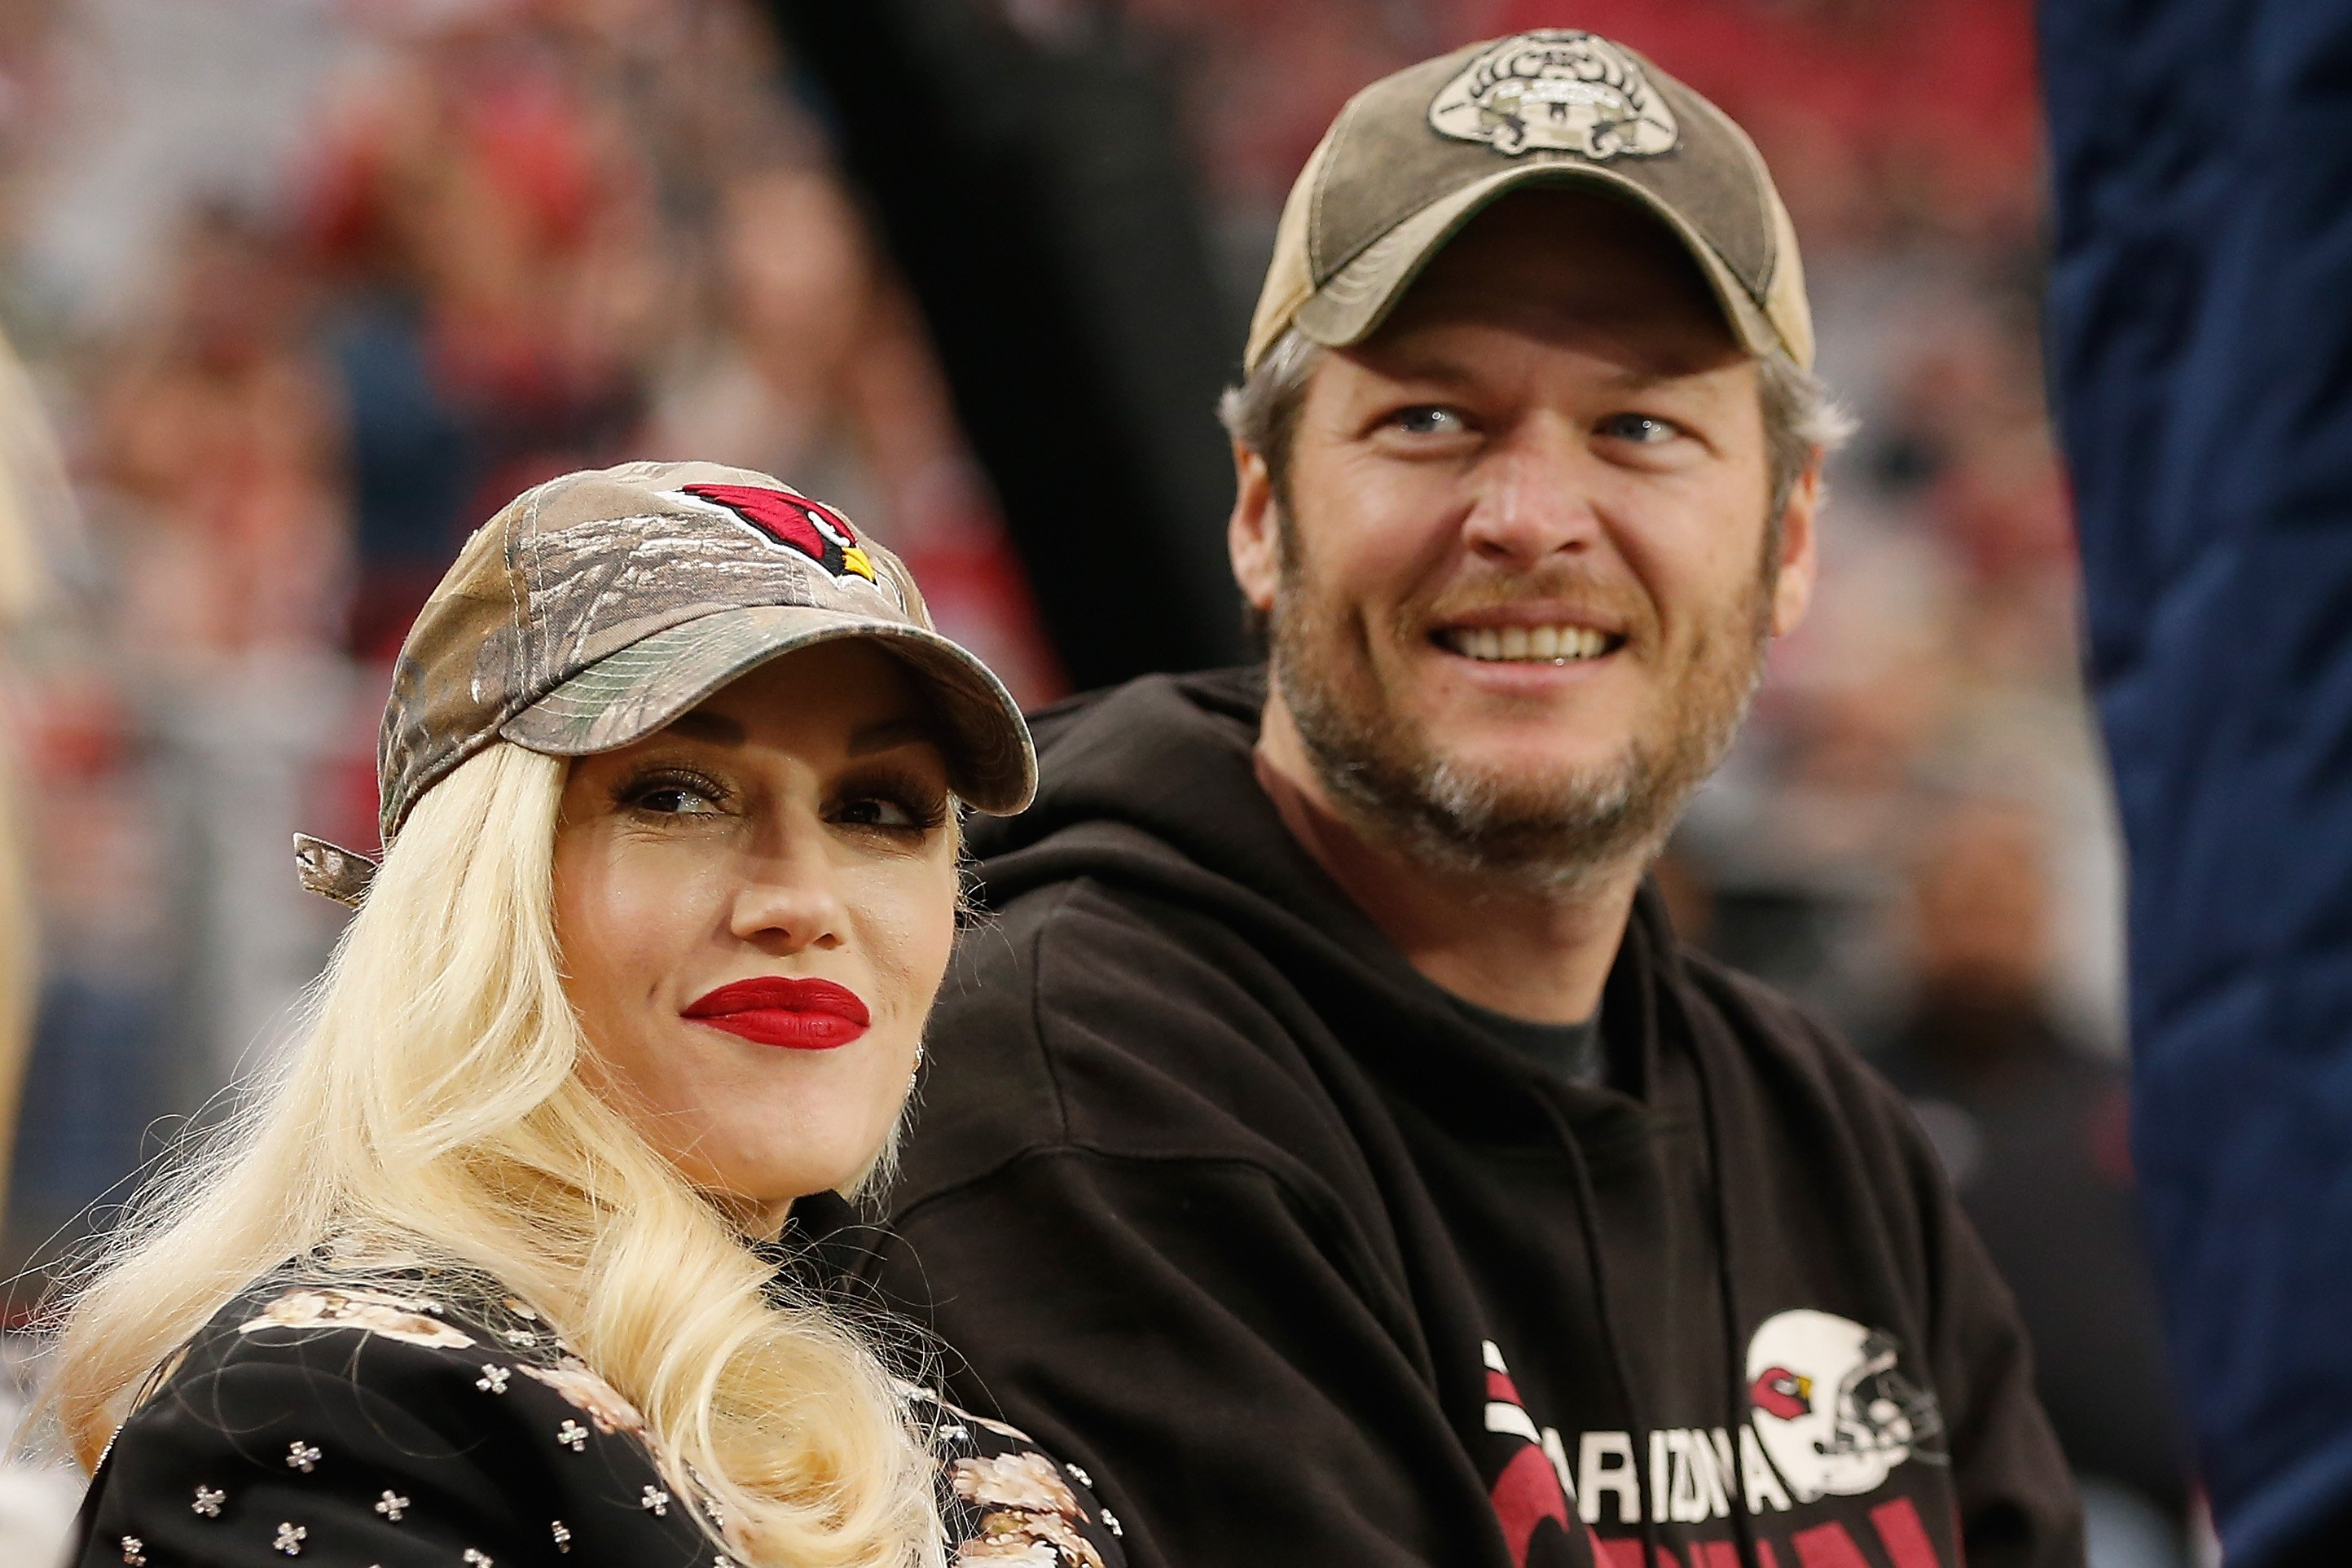 Gwen Stefani and Blake Shelton attend the NFL game between the Green Bay Packers and Arizona Cardinals. | Source: Getty Images